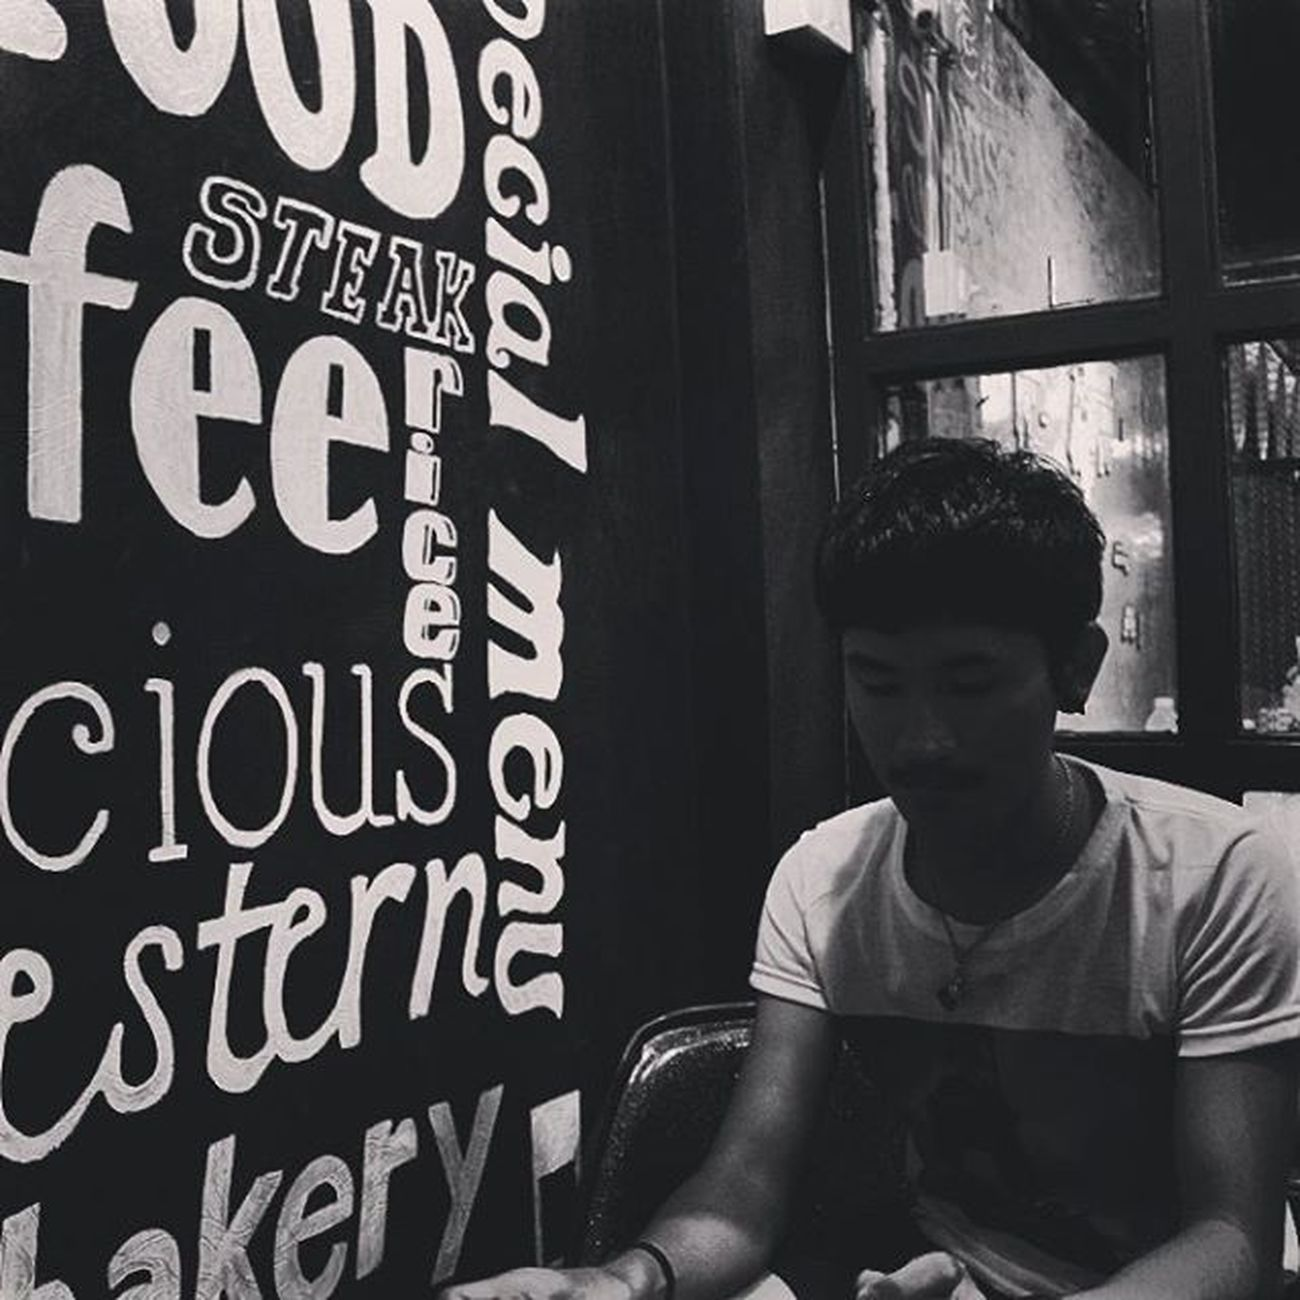 Just close you eyes. Eatingdinner LongTime  Hipster ArmWatcharapong